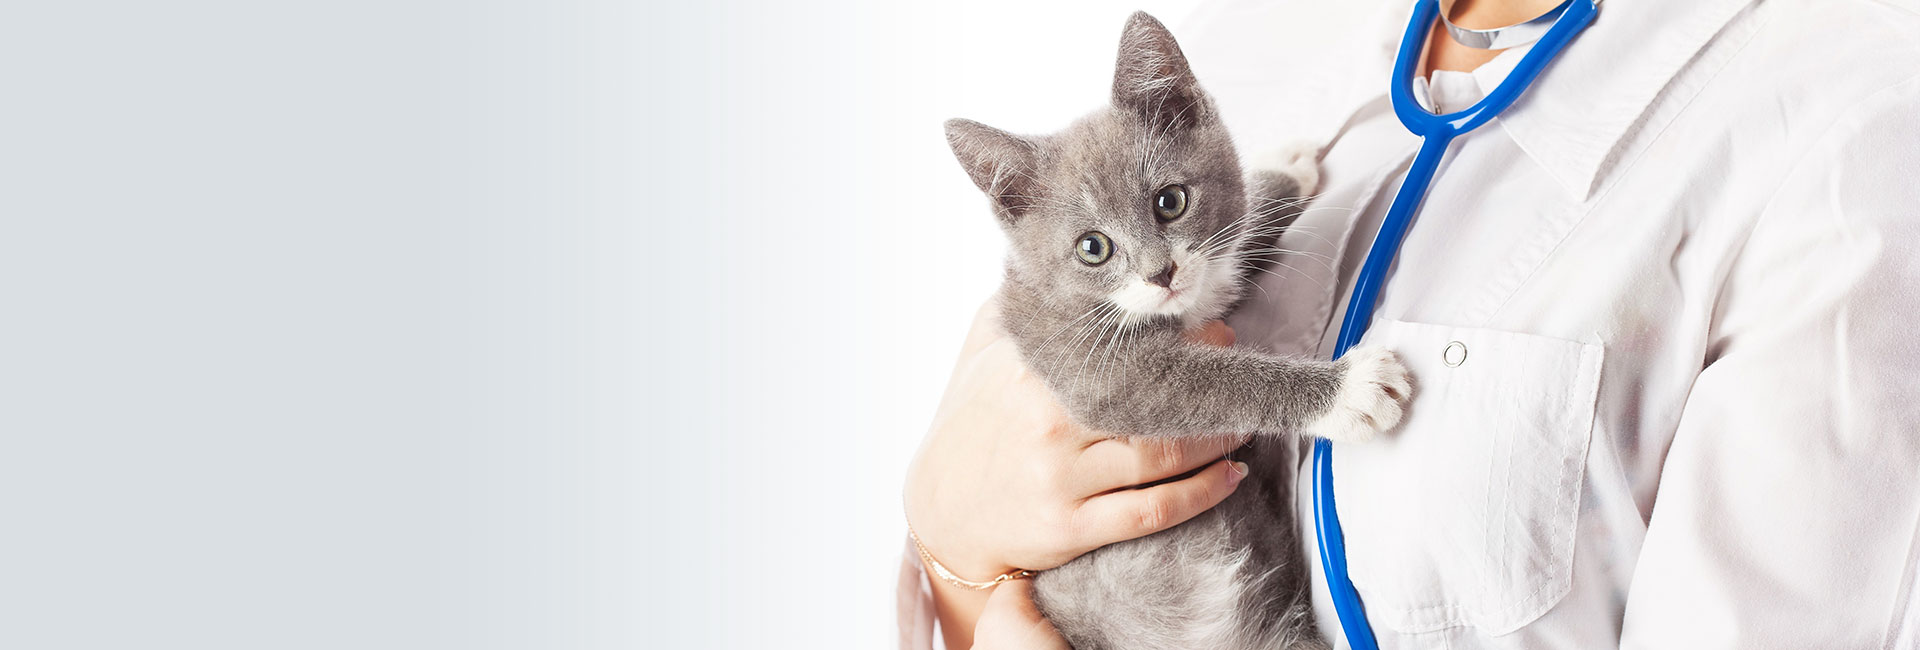 Veterinarian holding cat